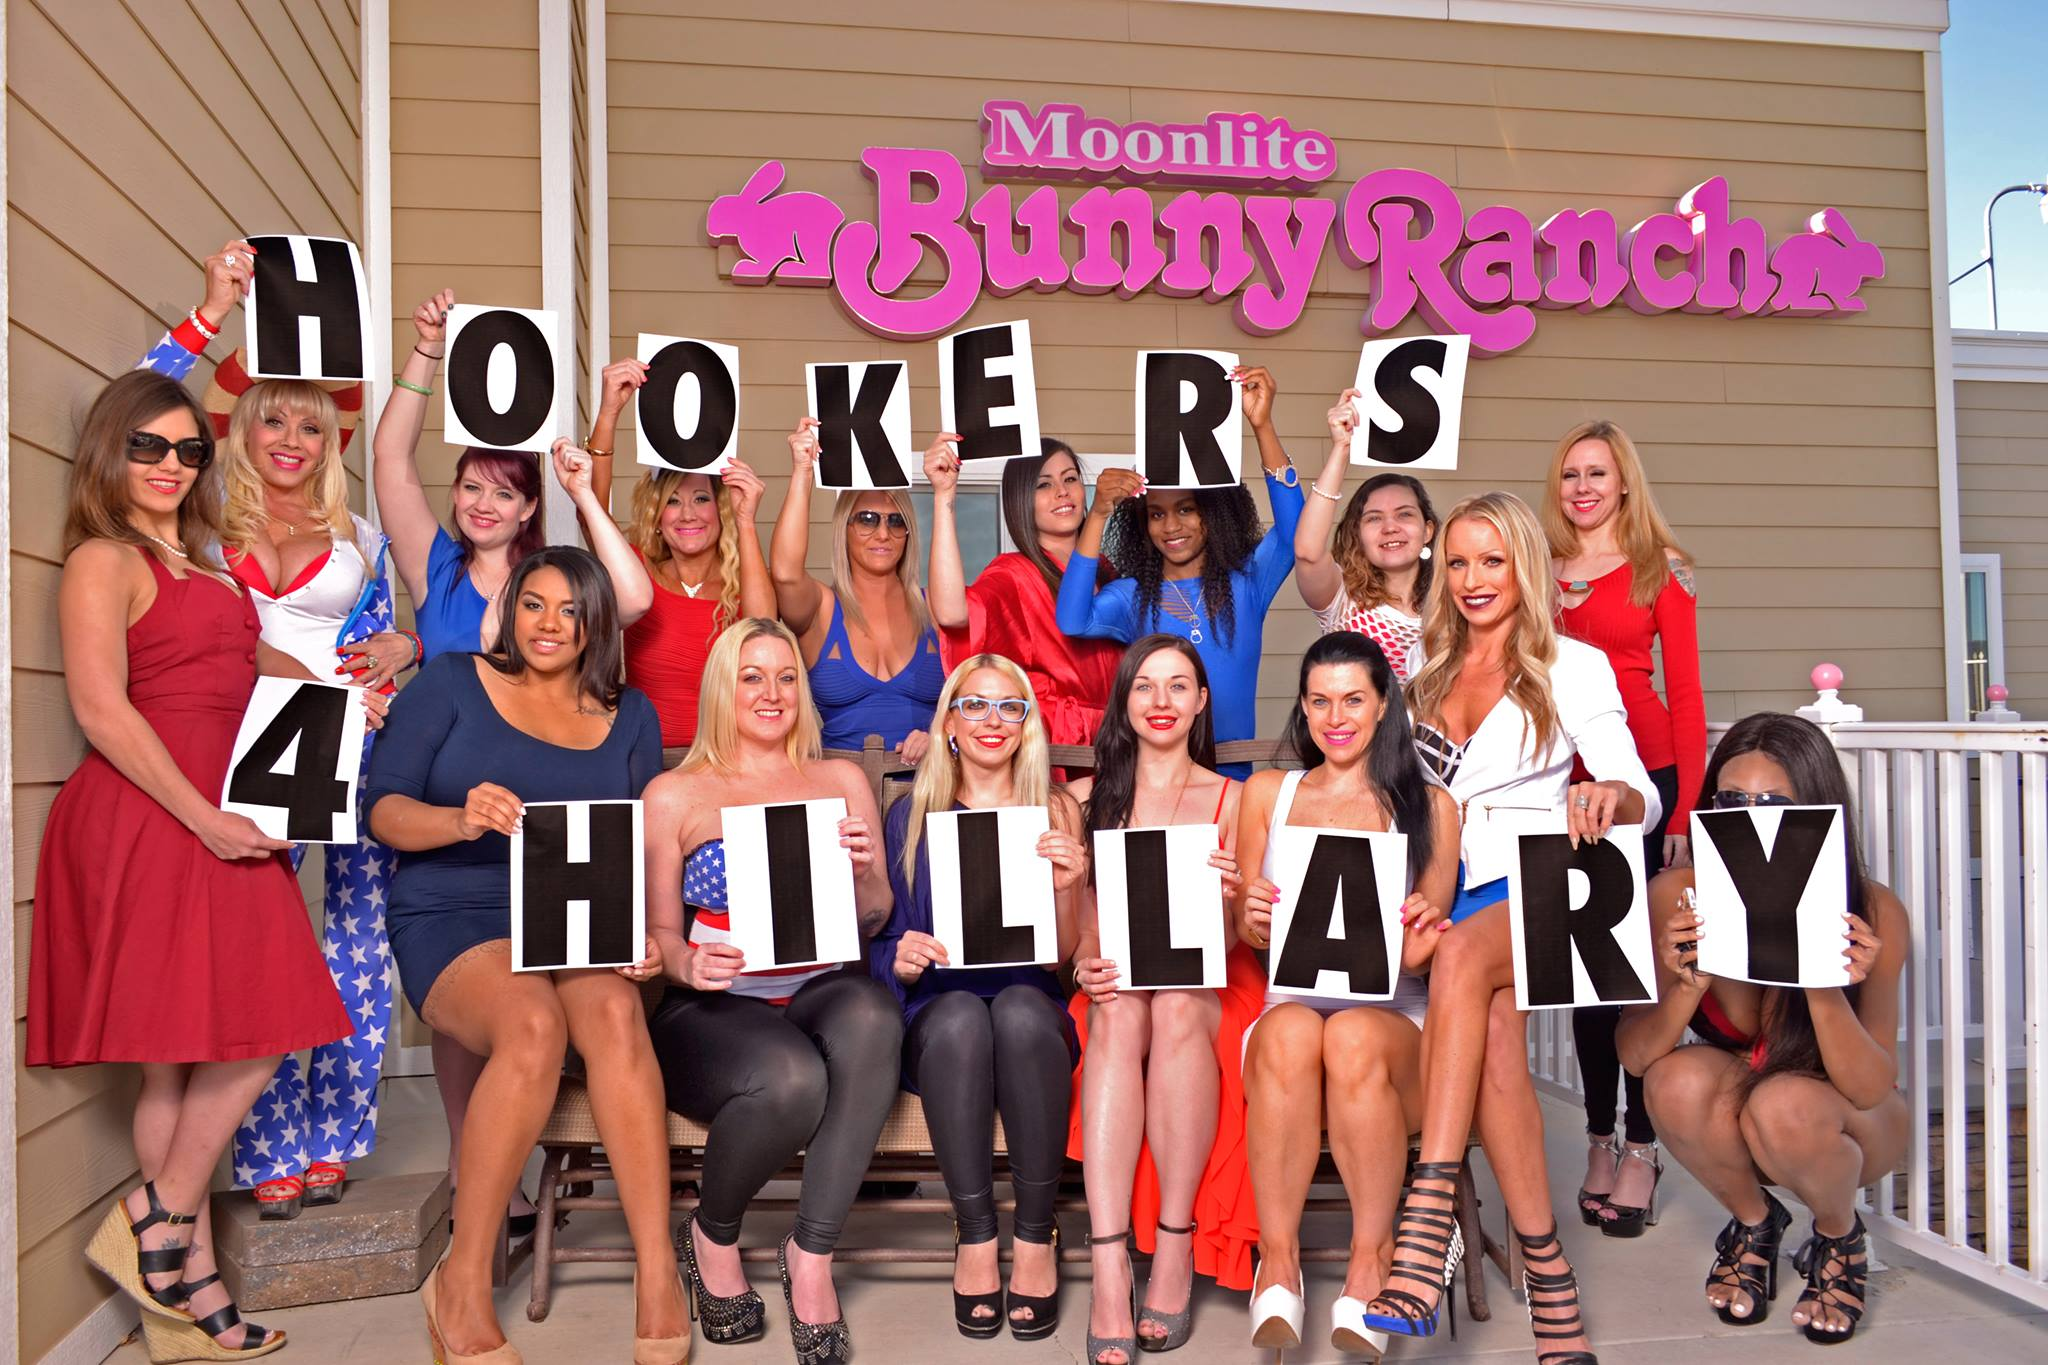 Hookers 4 Hillary members pose outside the Moonlite Bunny Ranch in Carson City, Nev. (Hookers 4 Hillary)